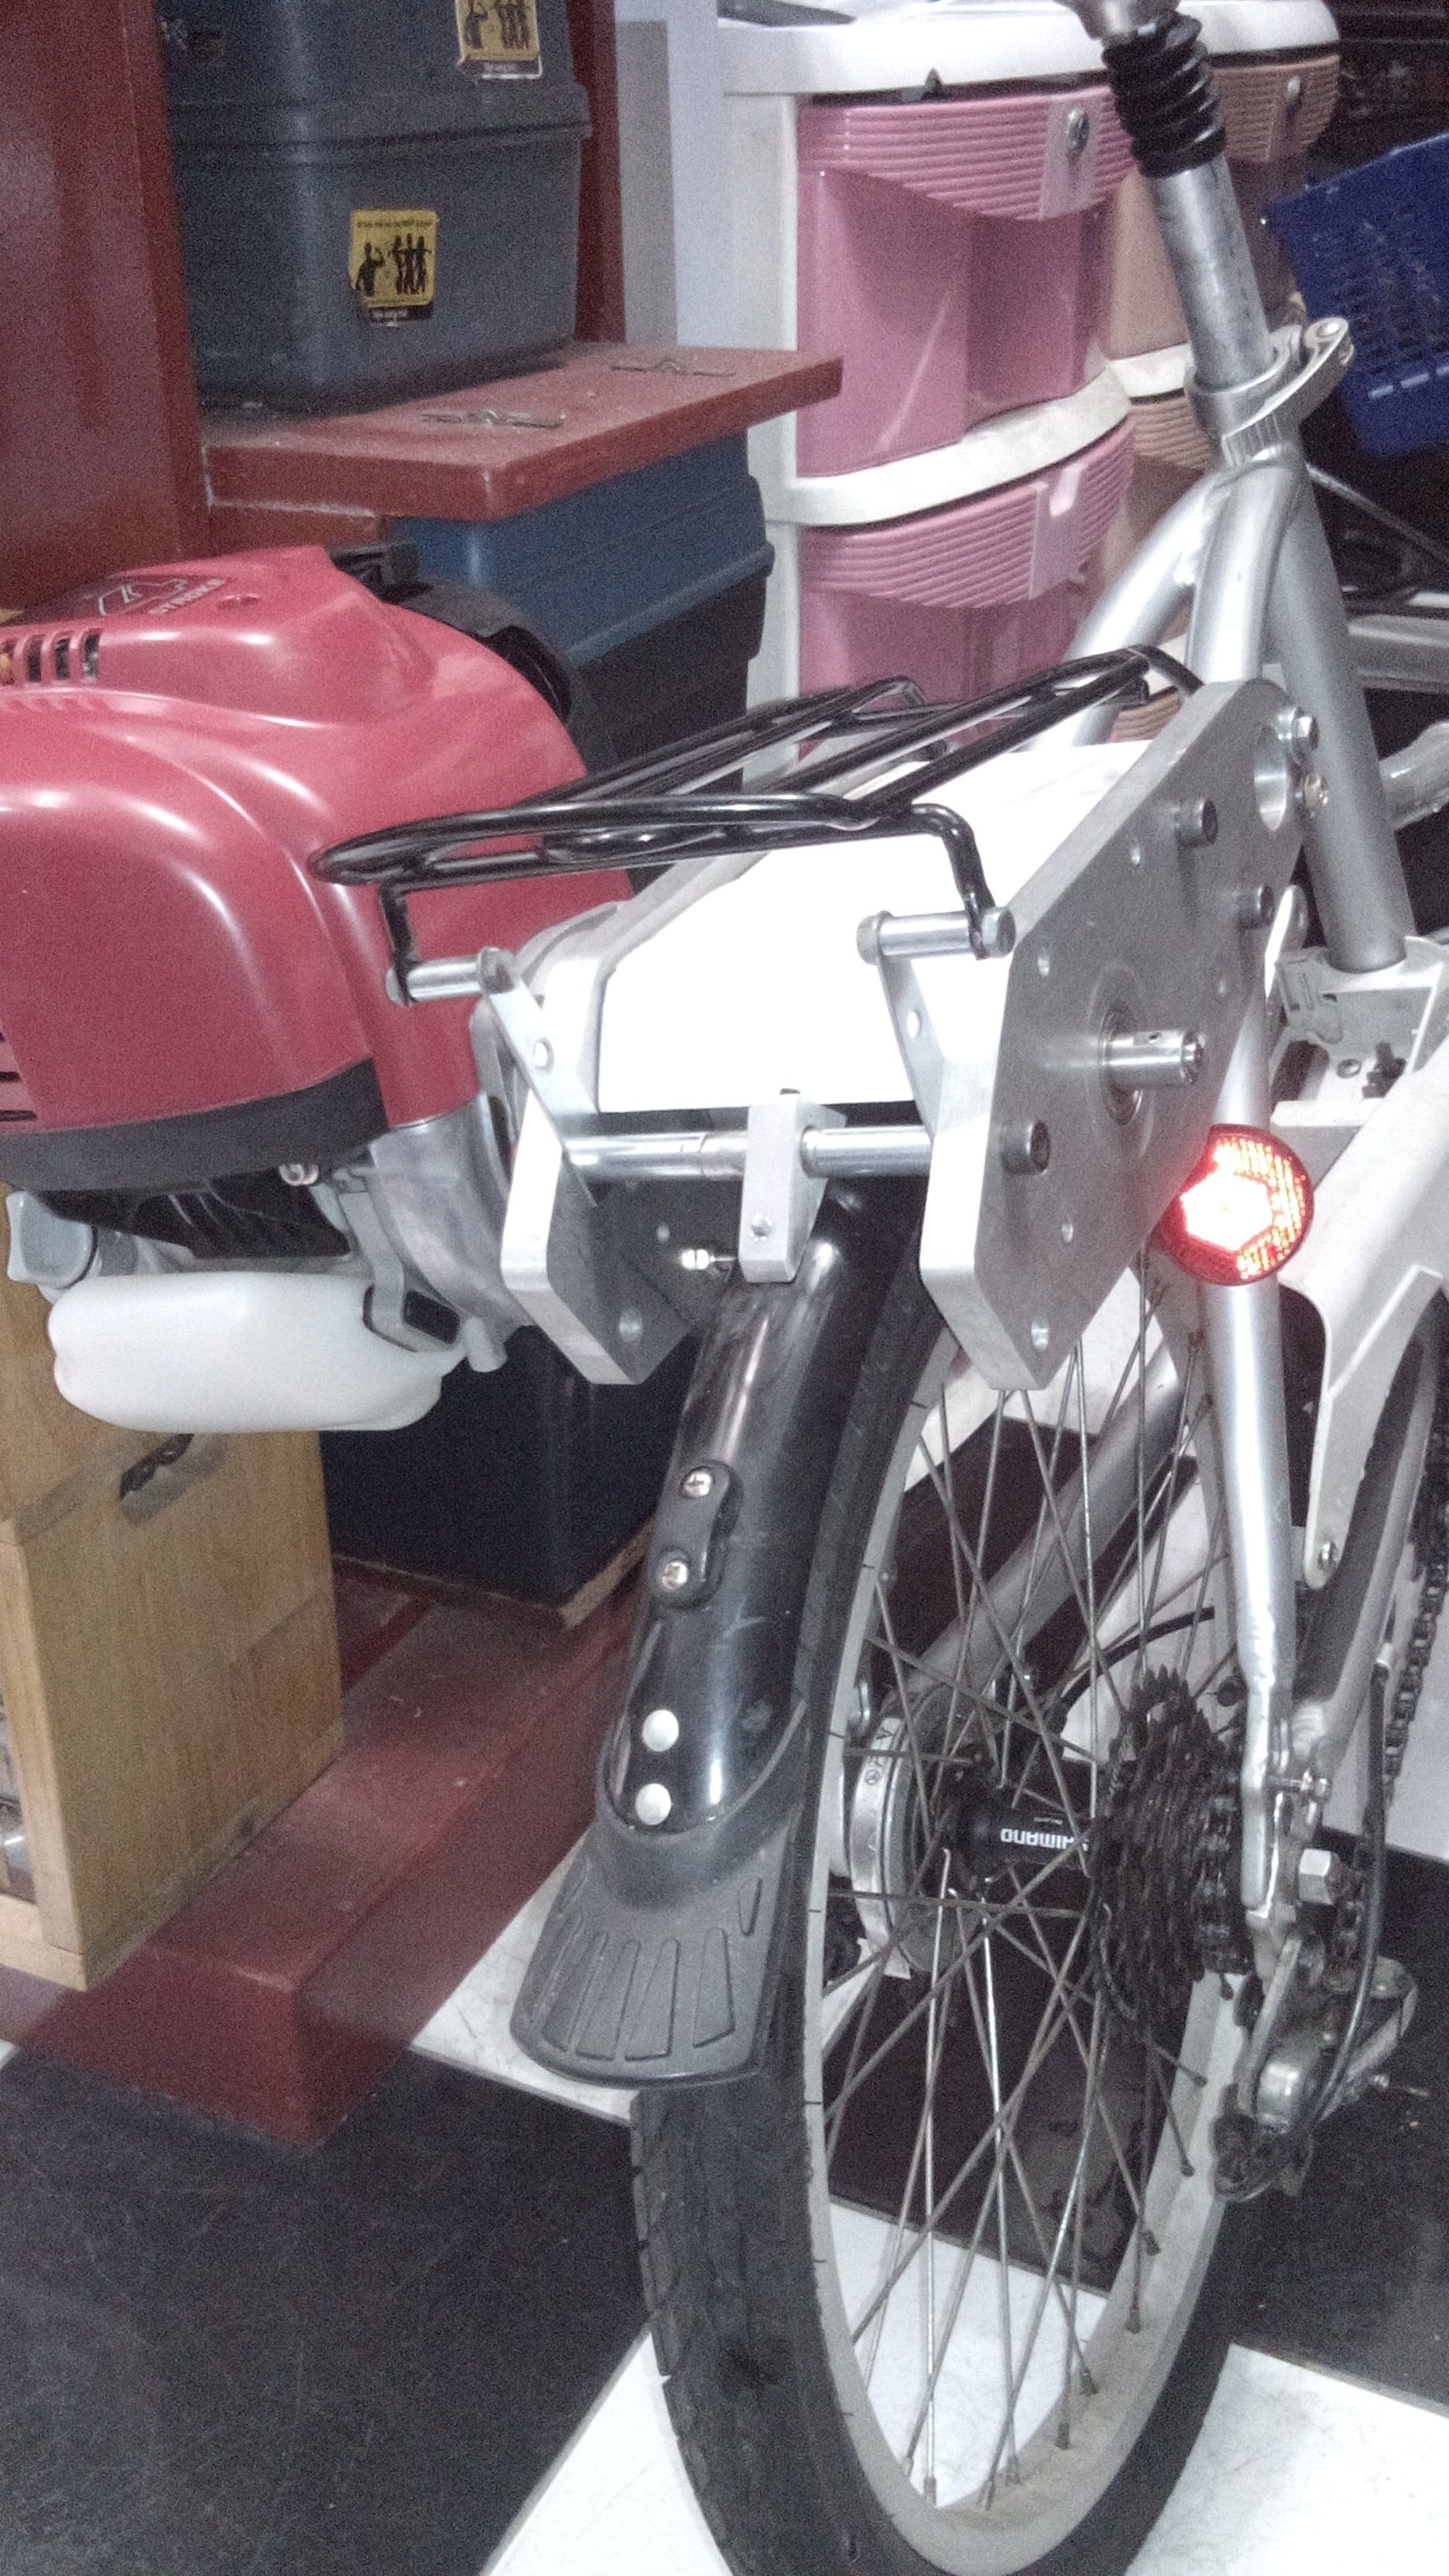 Electric Motor, Weed, Bicycle, Cannabis, Bike, Bicycling, Bicycles